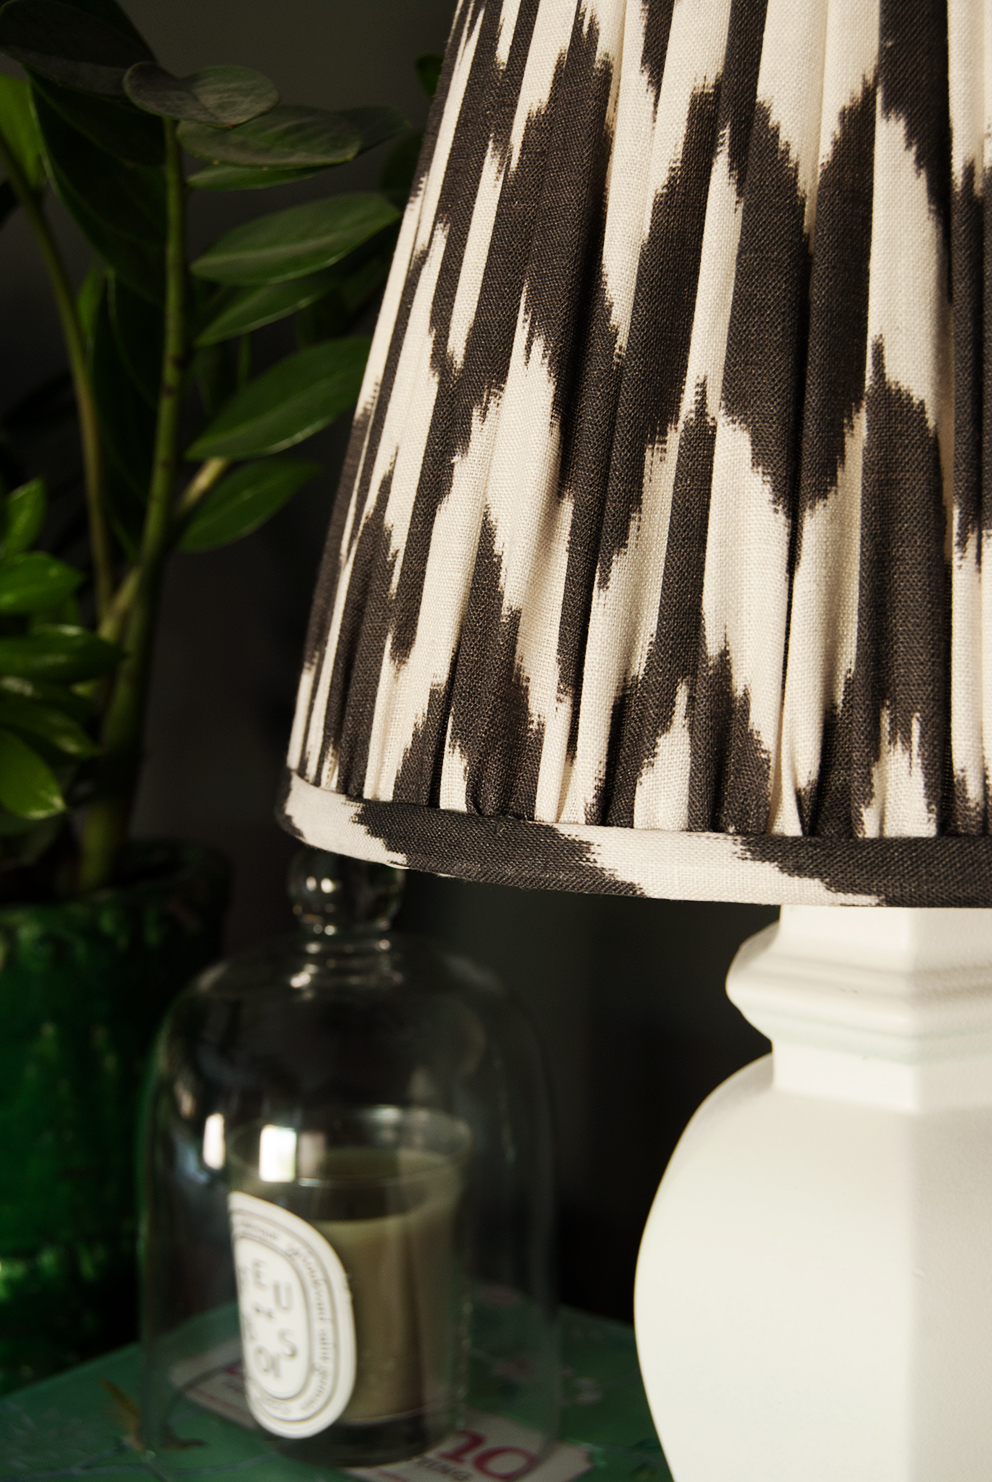 Ikat lampshades from Pooky on vintage ebay bases (sprayed white). A great way to save money so you can spend more on the lampshades or vice versa!